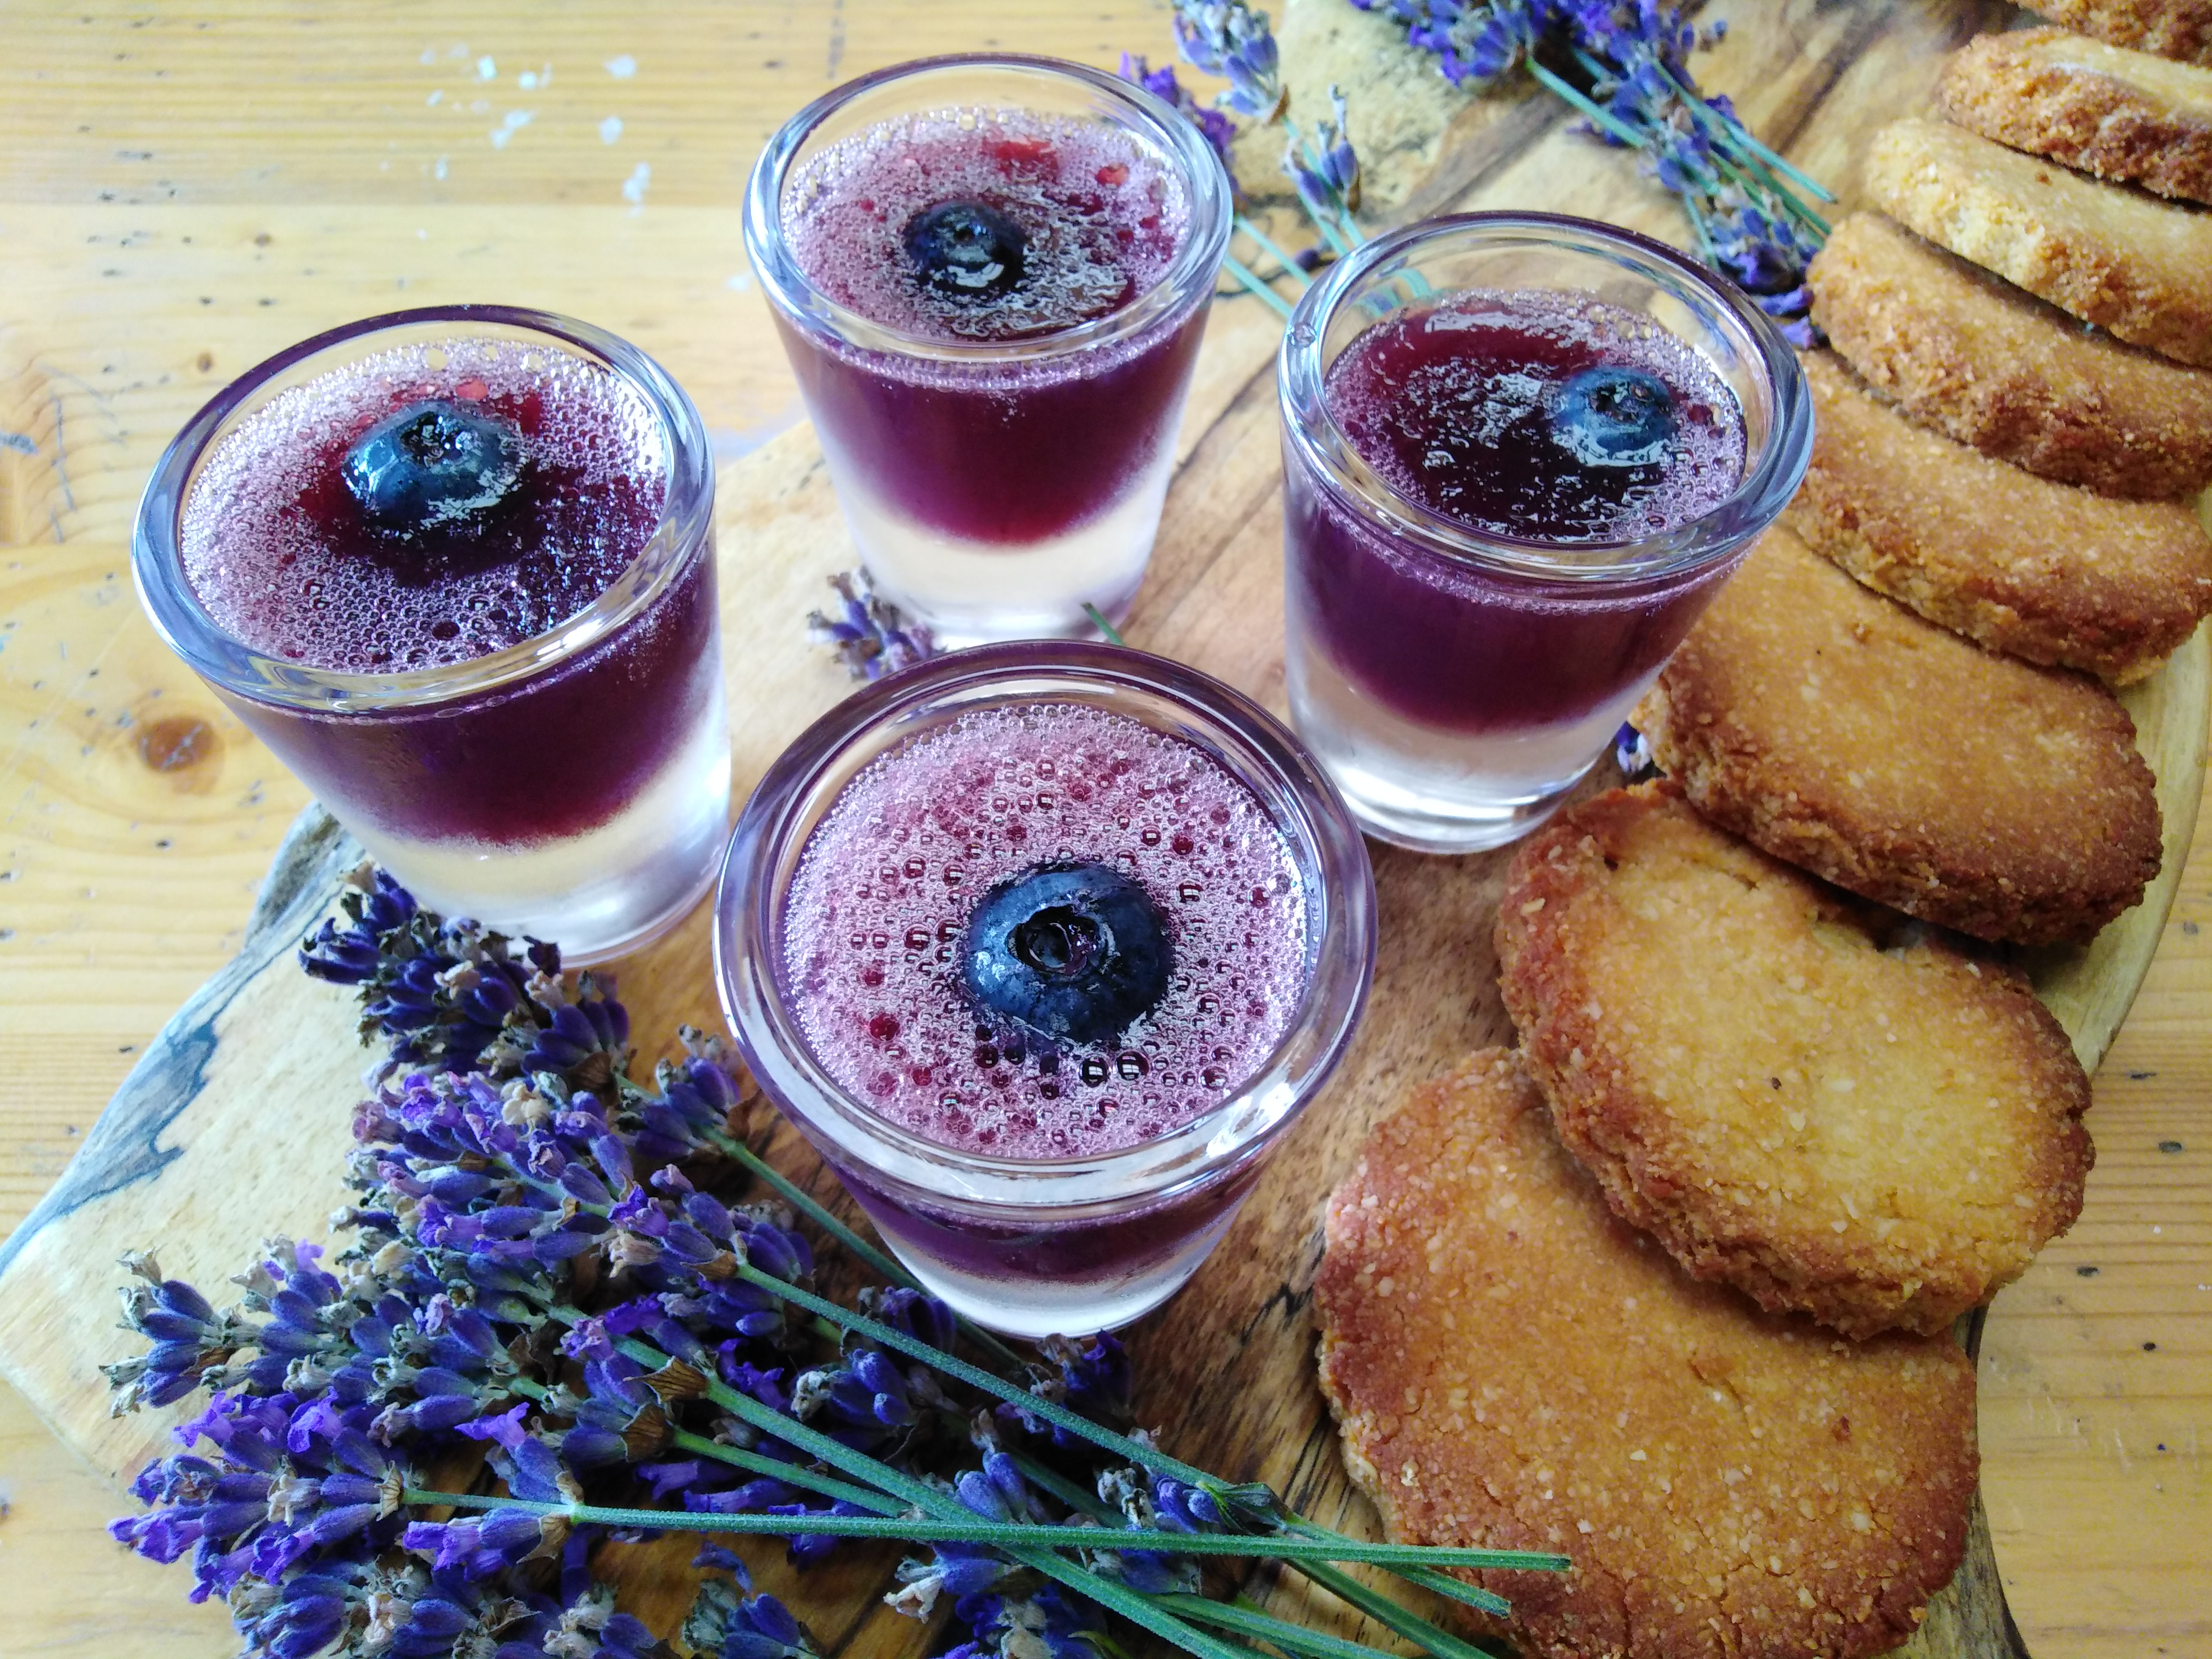 lavender-jelly-with-almond-biscuits